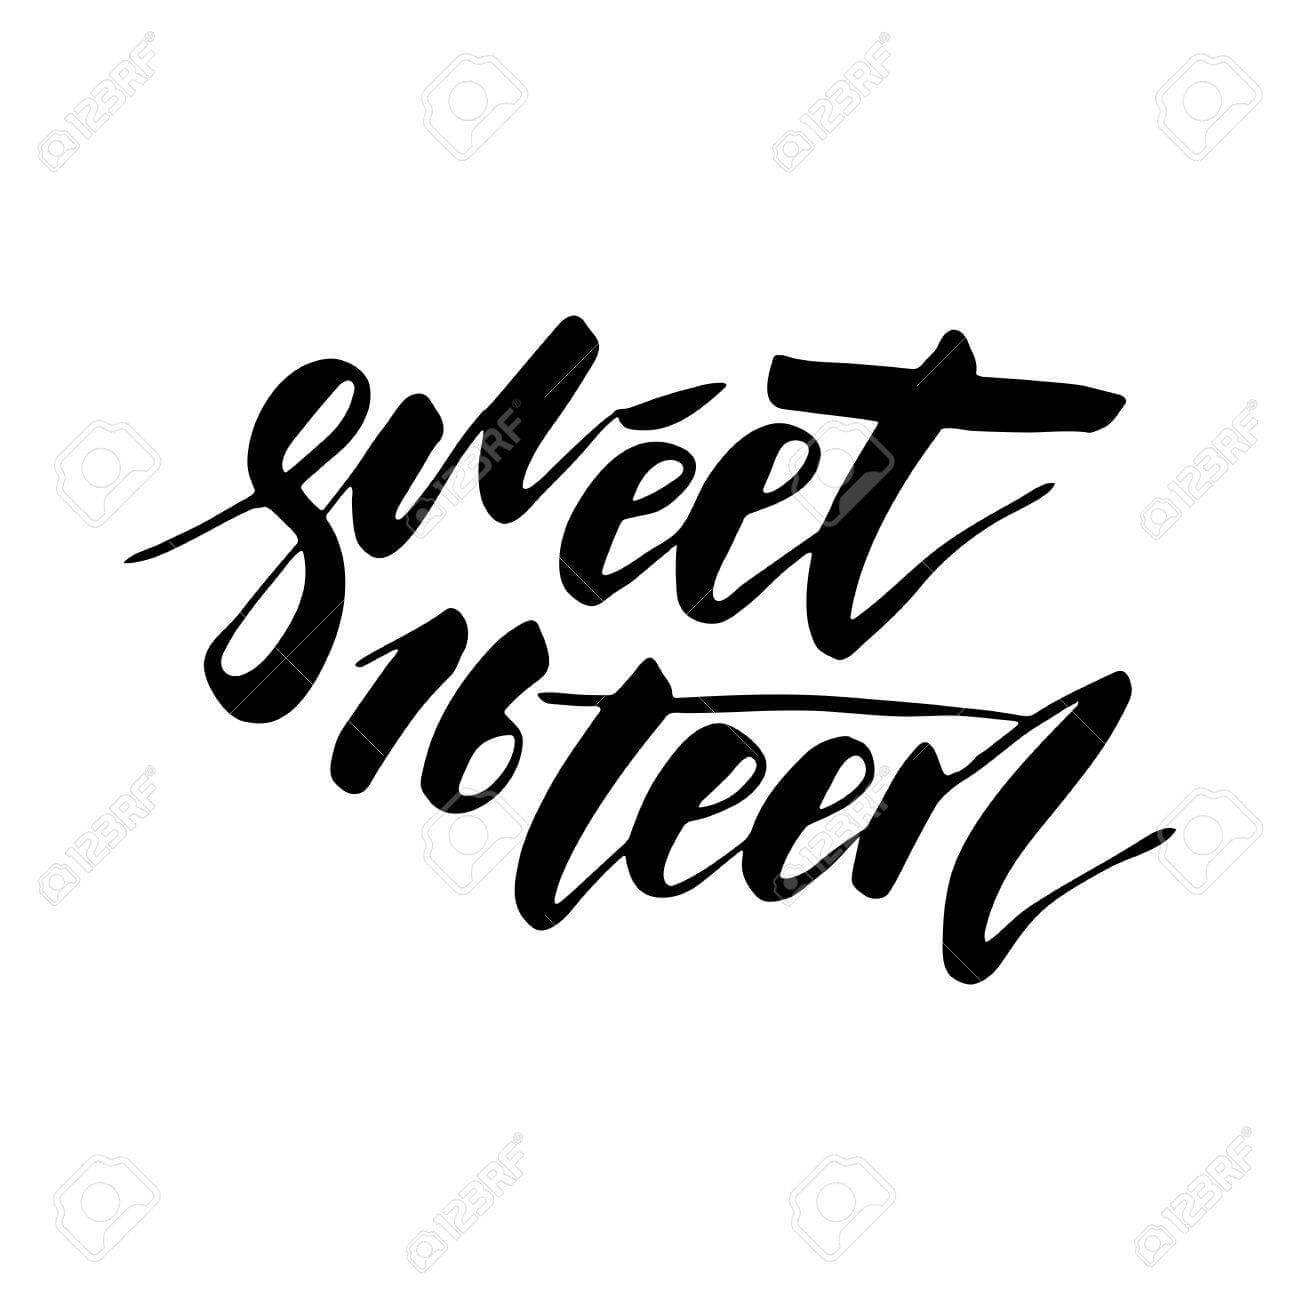 Sweet Sixteen - Lettering Design For Posters, Flyers, T-Shirts,.. within Sweet 16 Banner Template